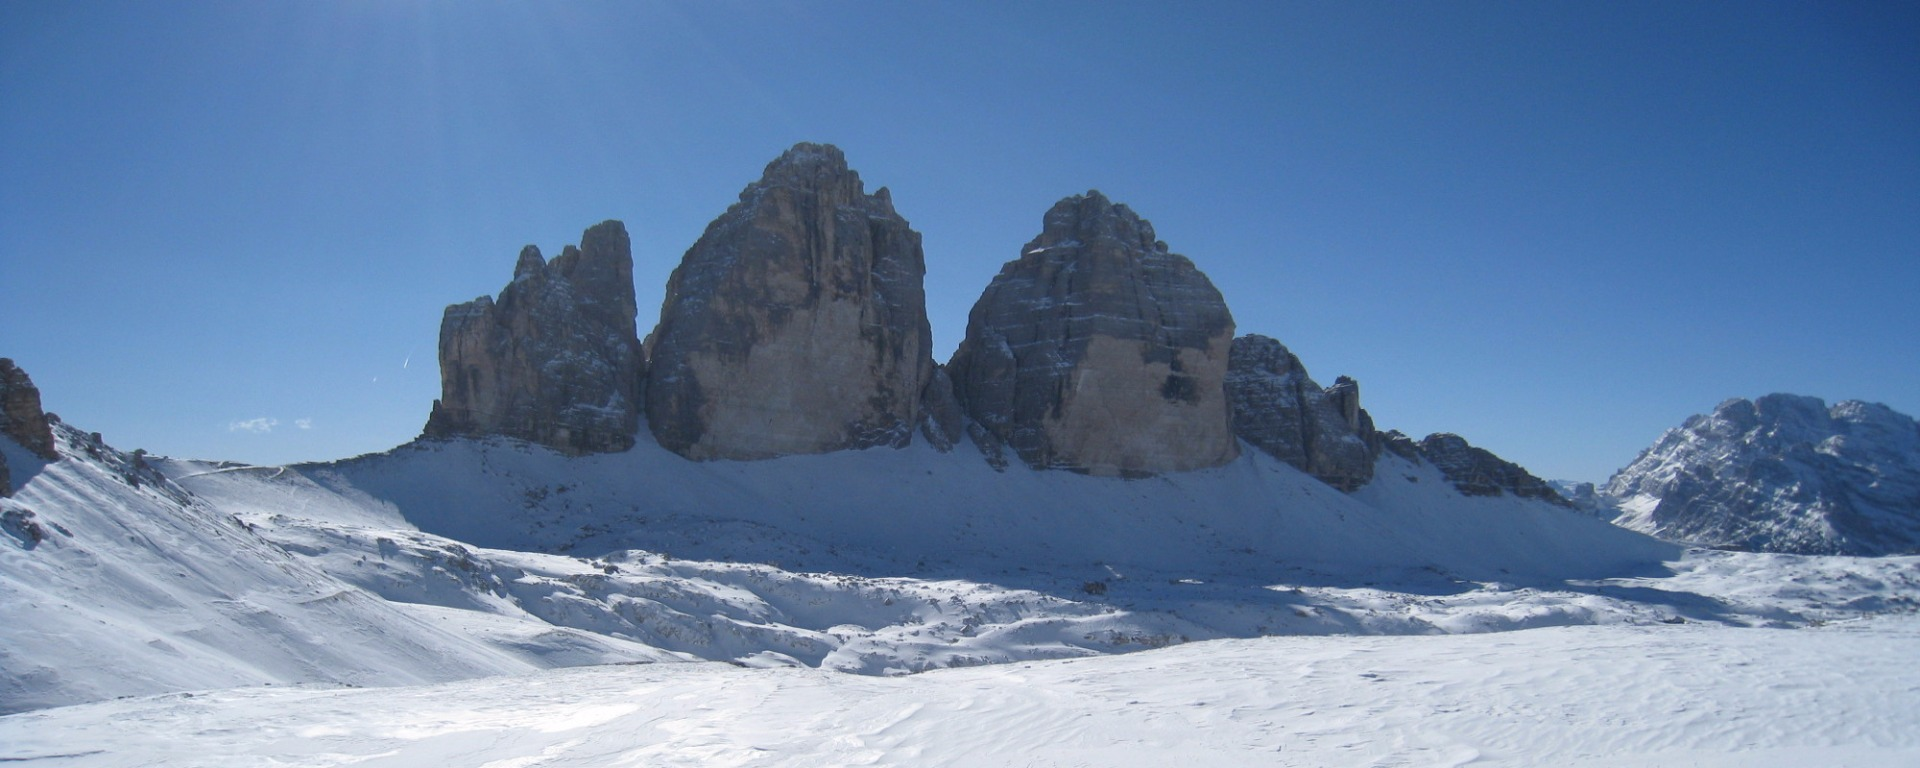 Three Peaks in the Sesto Dolomites in winter